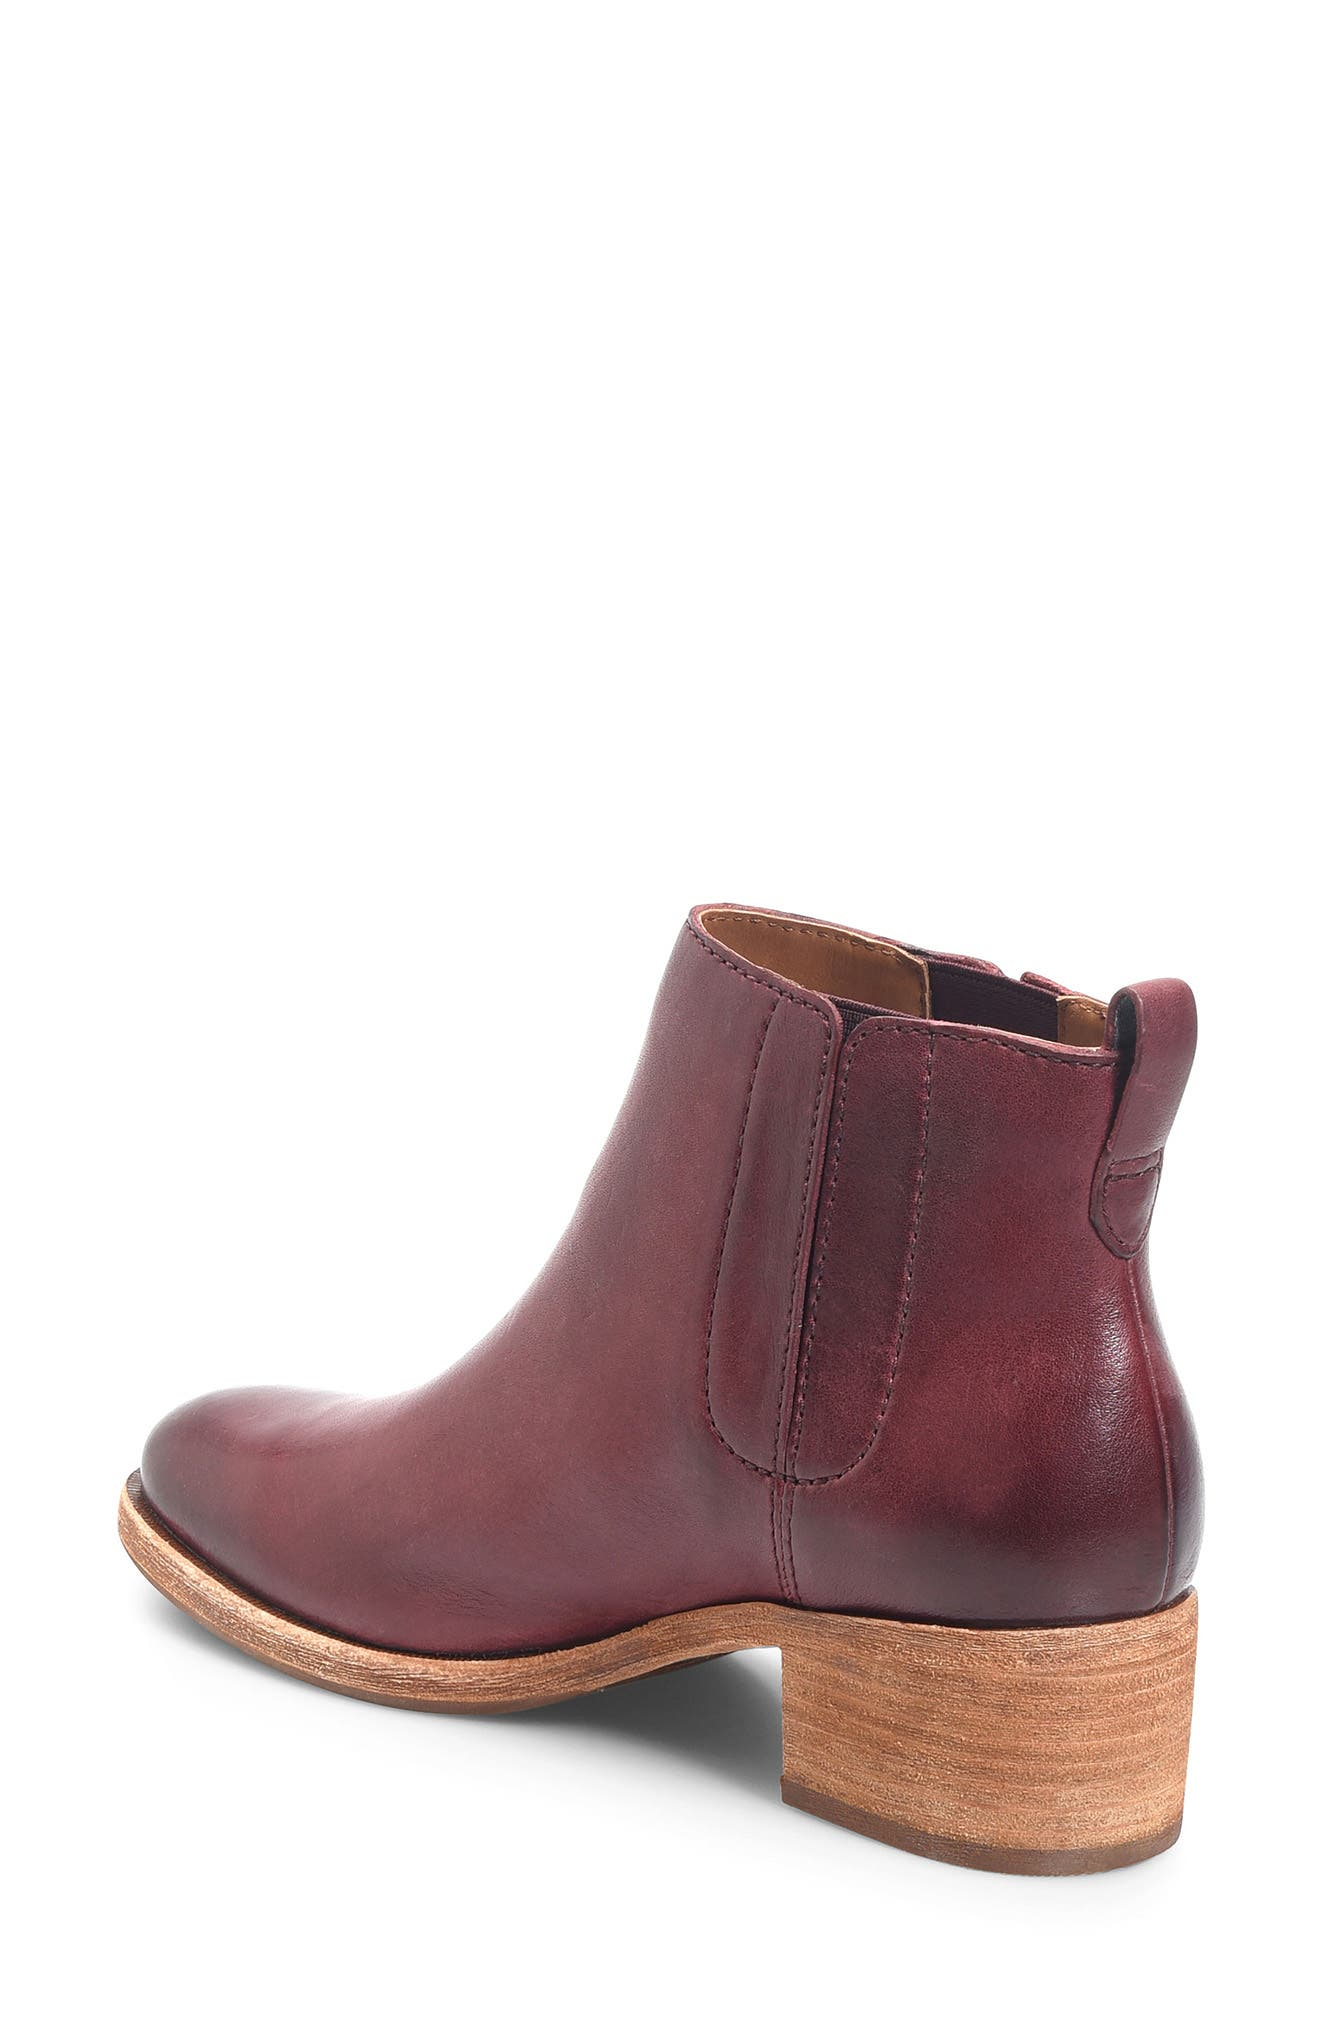 Mindo Chelsea Bootie,                             Alternate thumbnail 2, color,                             Burgundy Leather